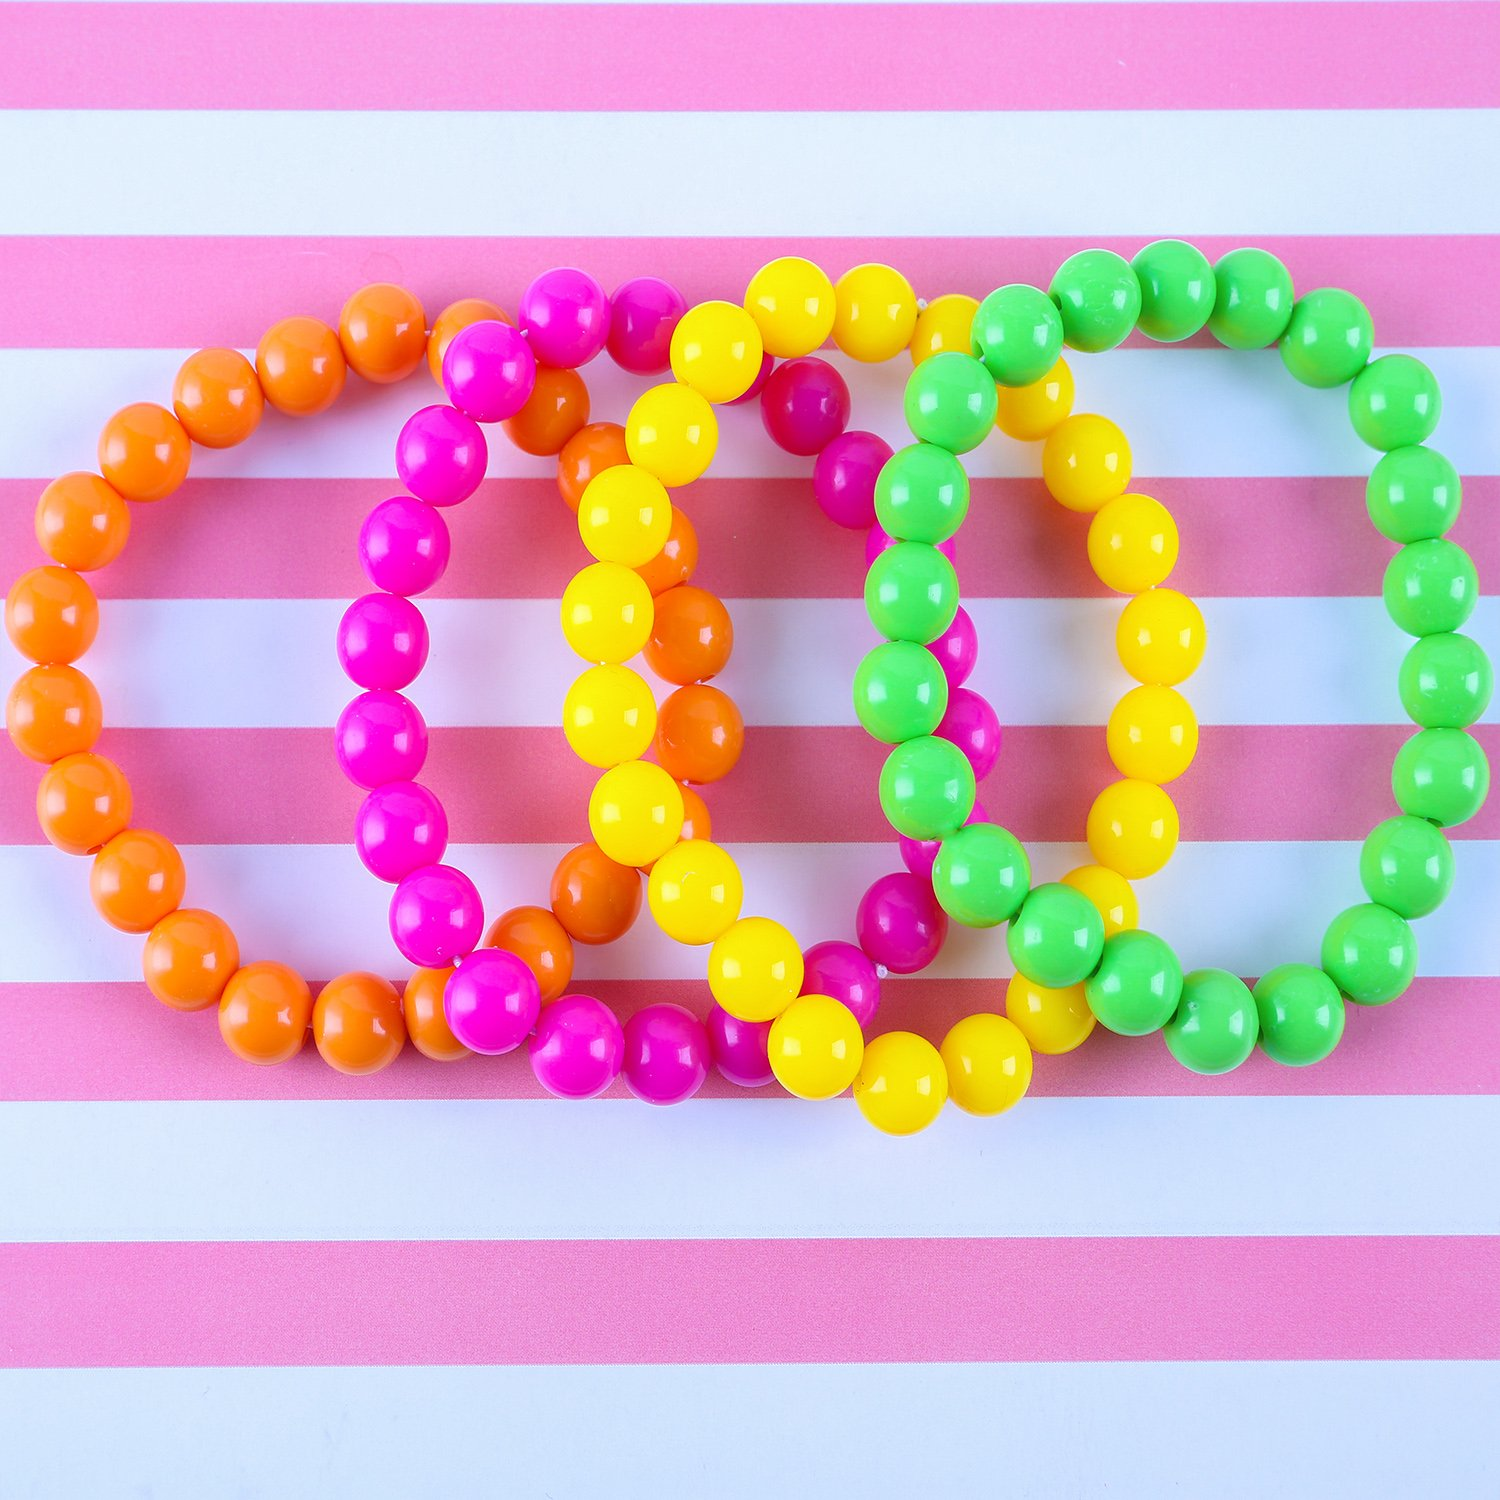 Coobey 80s Neon Bracelet Necklace Bow Headband Fishnet Gloves Lighting Earring by Coobey (Image #5)